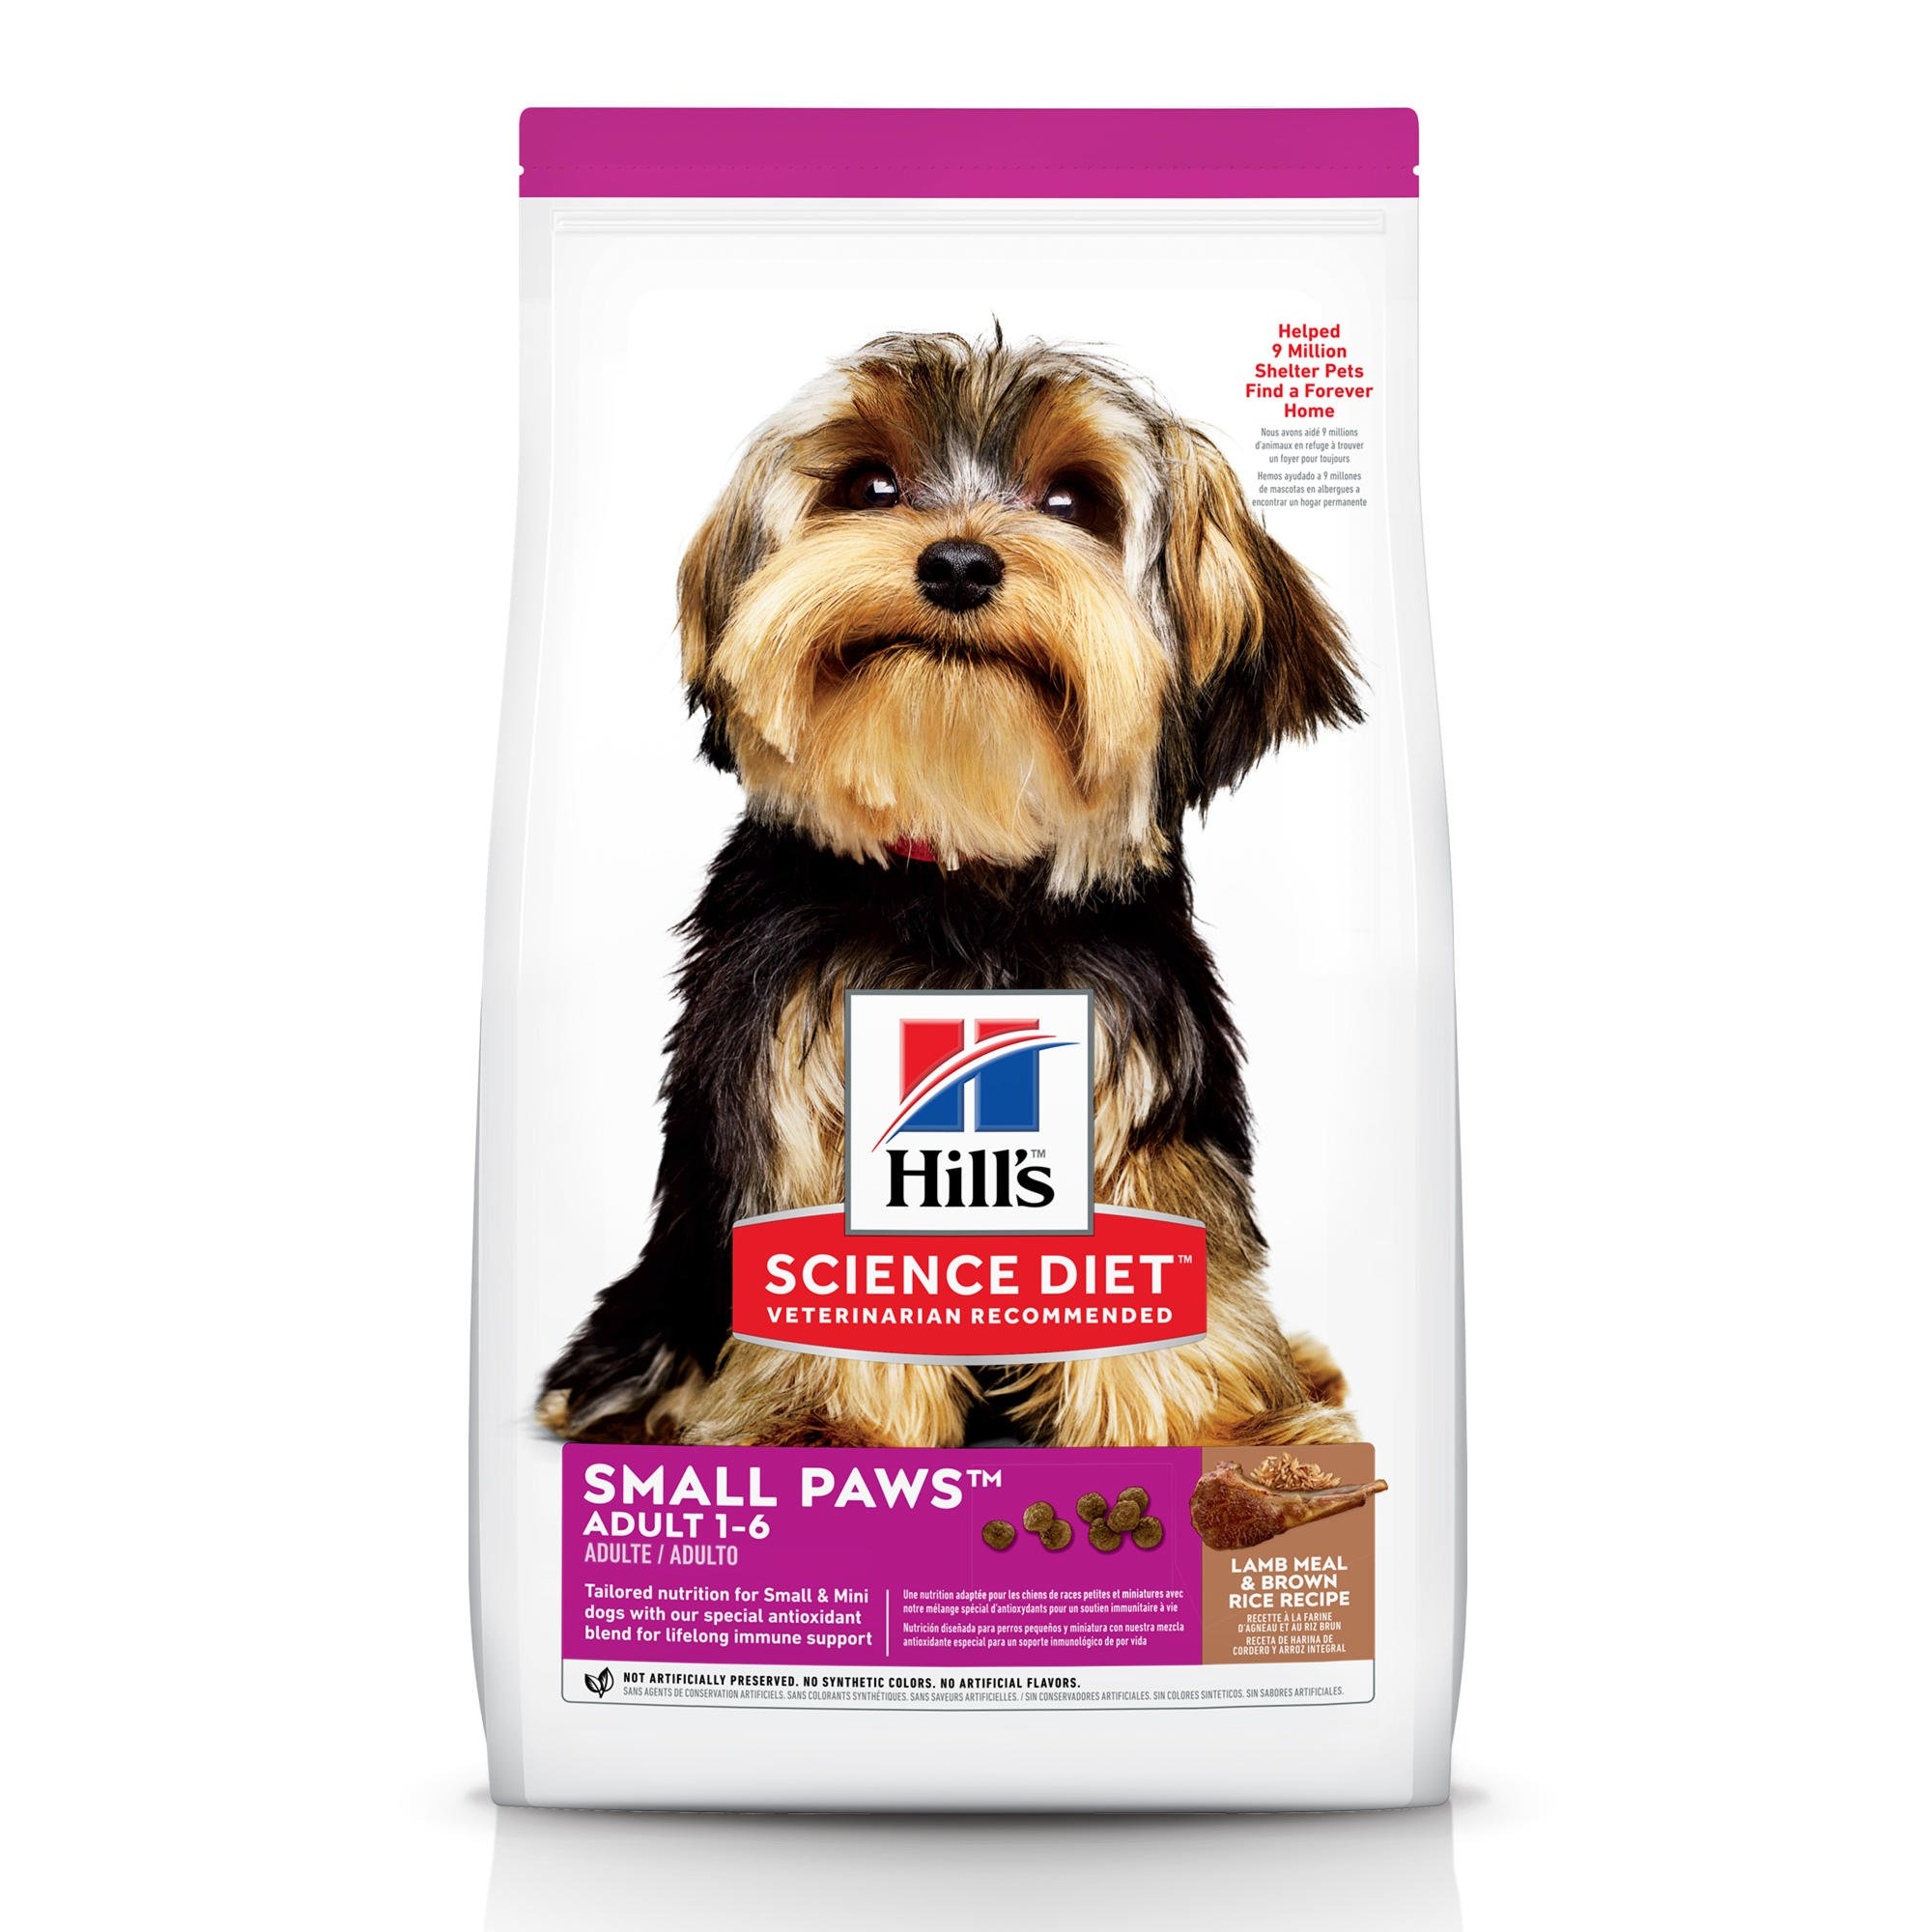 Hill's Science Diet Adult Small Paws Lamb Meal & Brown Rice Recipe Dry Dog Food, 15.5 lbs., Bag